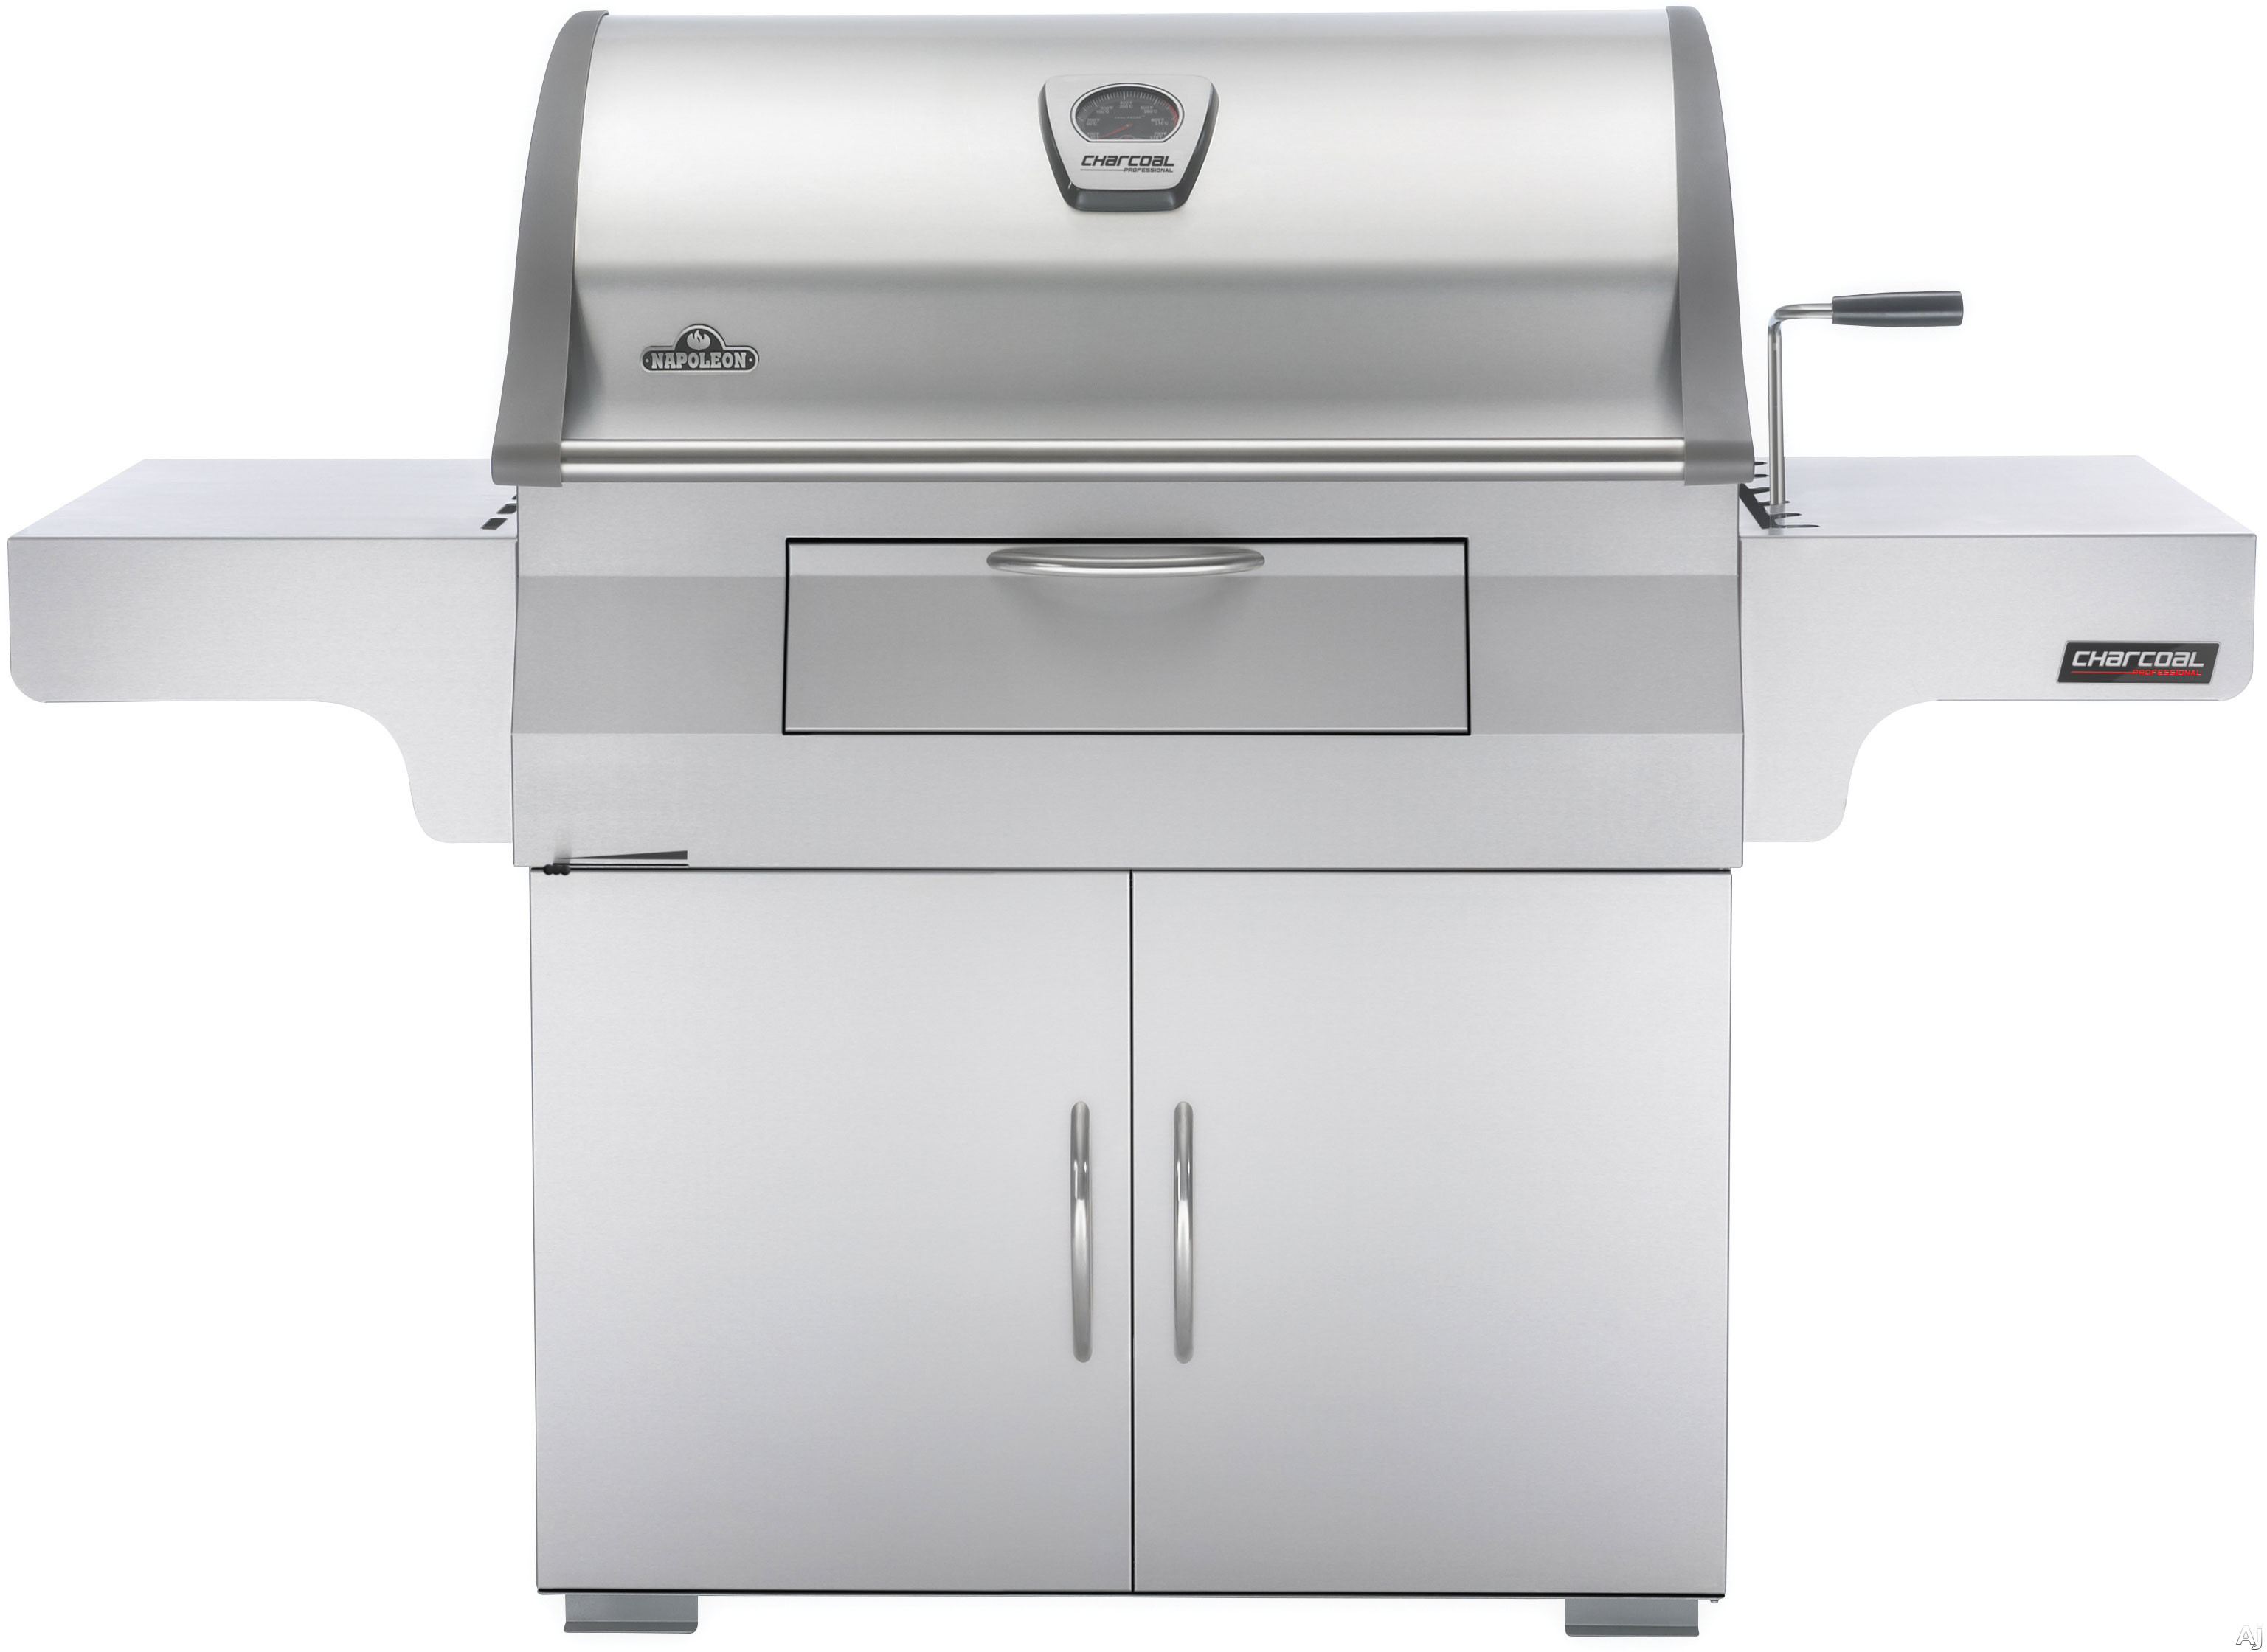 Napoleon PRO605CSS 68 Inch Freestanding Charcoal Grill with 845 sq. in. Cooking Area, Rear Charcoal Rotisserie Burner, Adjustable Charcoal Bed, Front Loading Charcoal Door and Air Vents